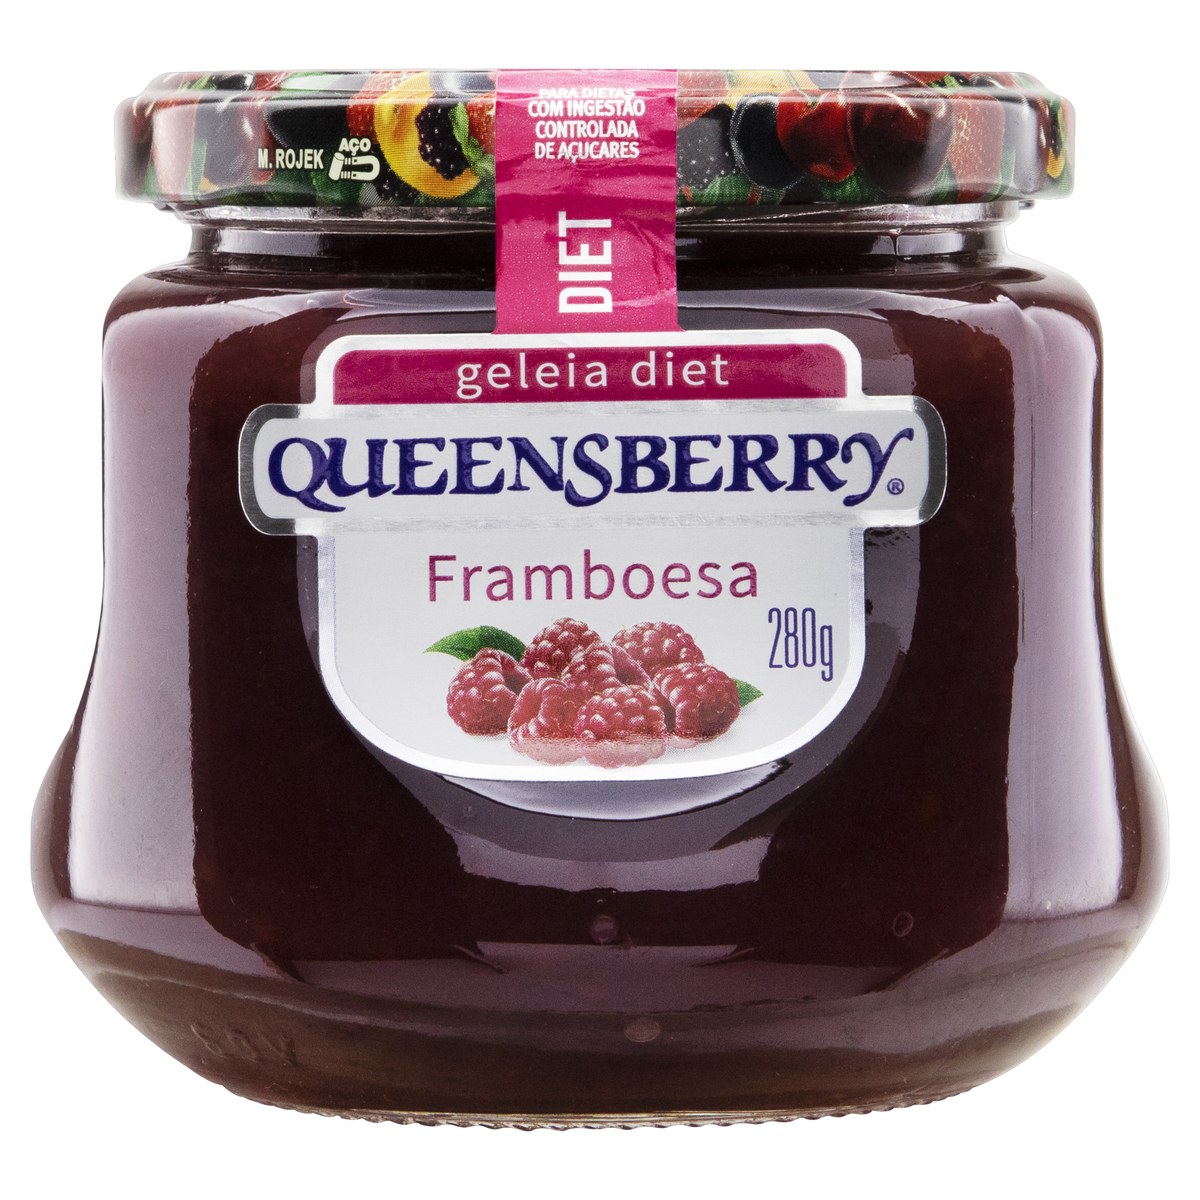 7896214533013 - GELEIA FRAMBOESA DIET QUEENSBERRY VIDRO 280G